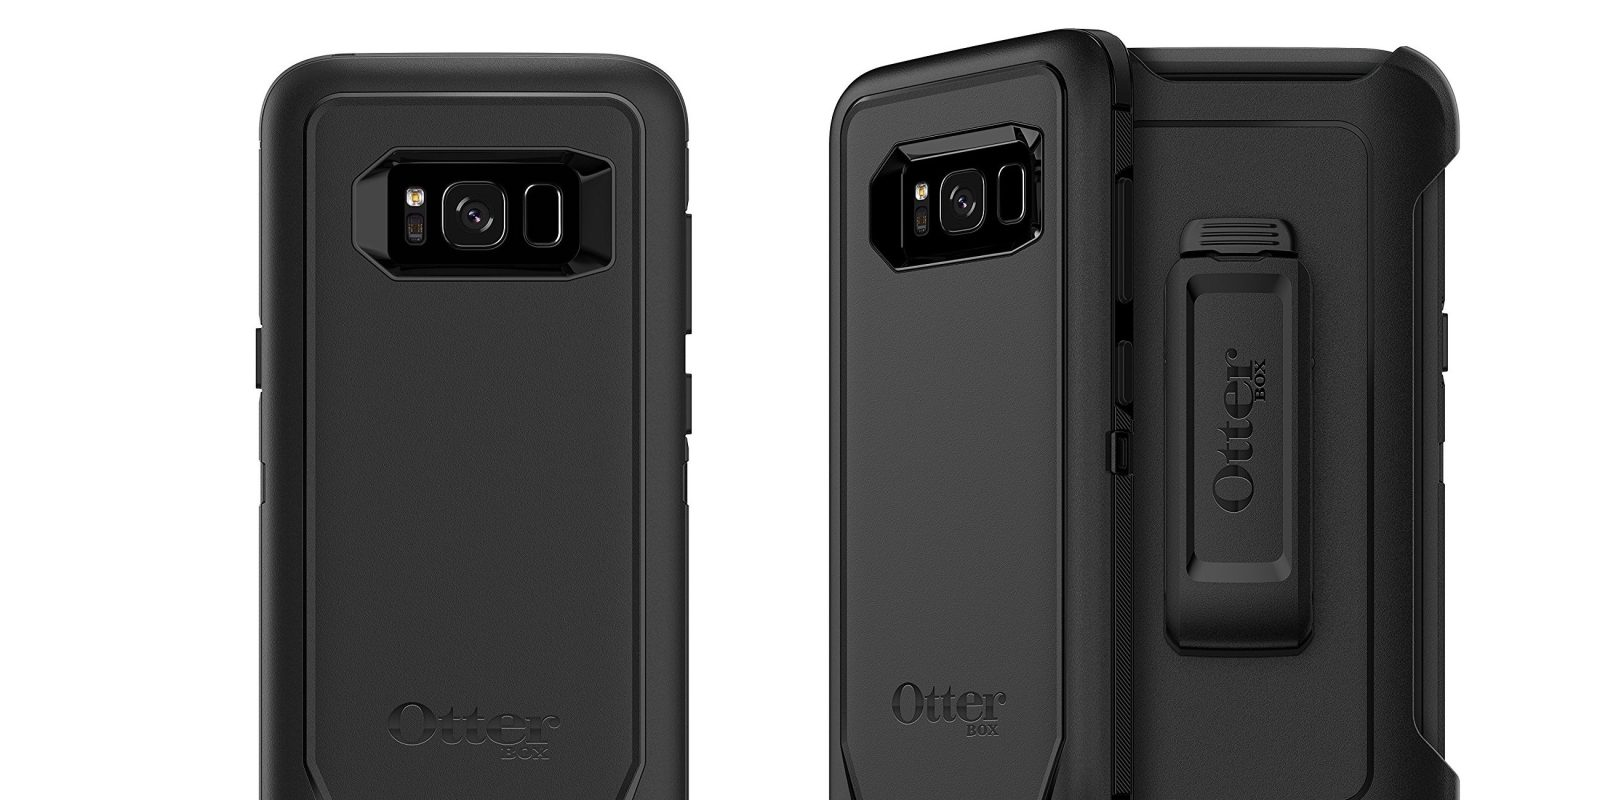 low priced 4276d d6687 OtterBox Defender Series Case for Samsung Galaxy S8 hits Amazon low ...